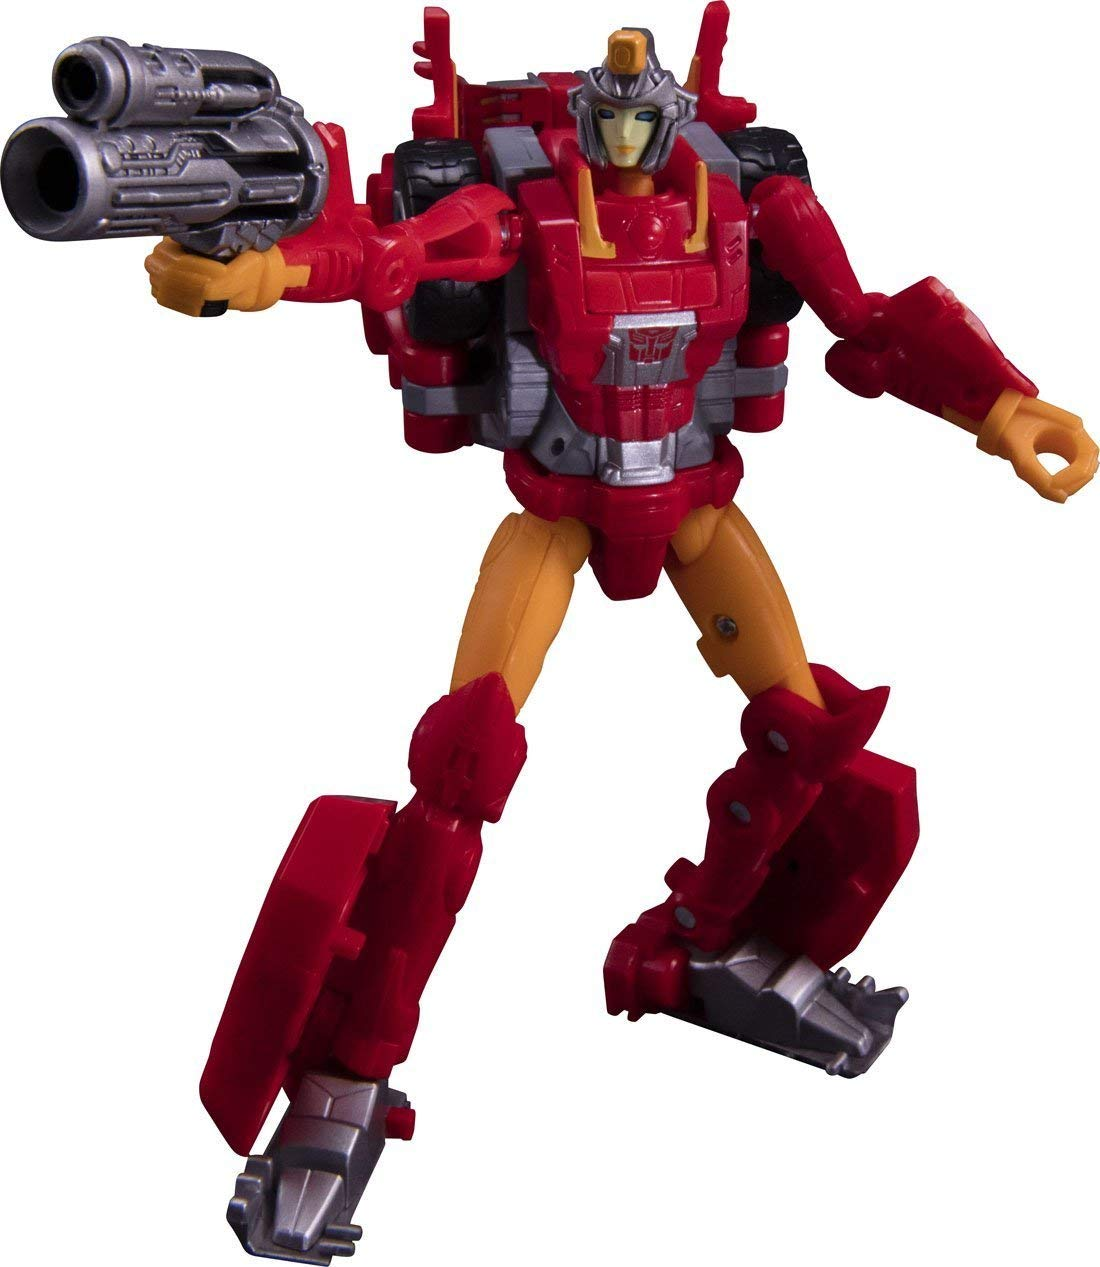 Hasbro Transformers Generations Power Of The Primes Deluxe Class Autobot Novastar In Stock On Amazon